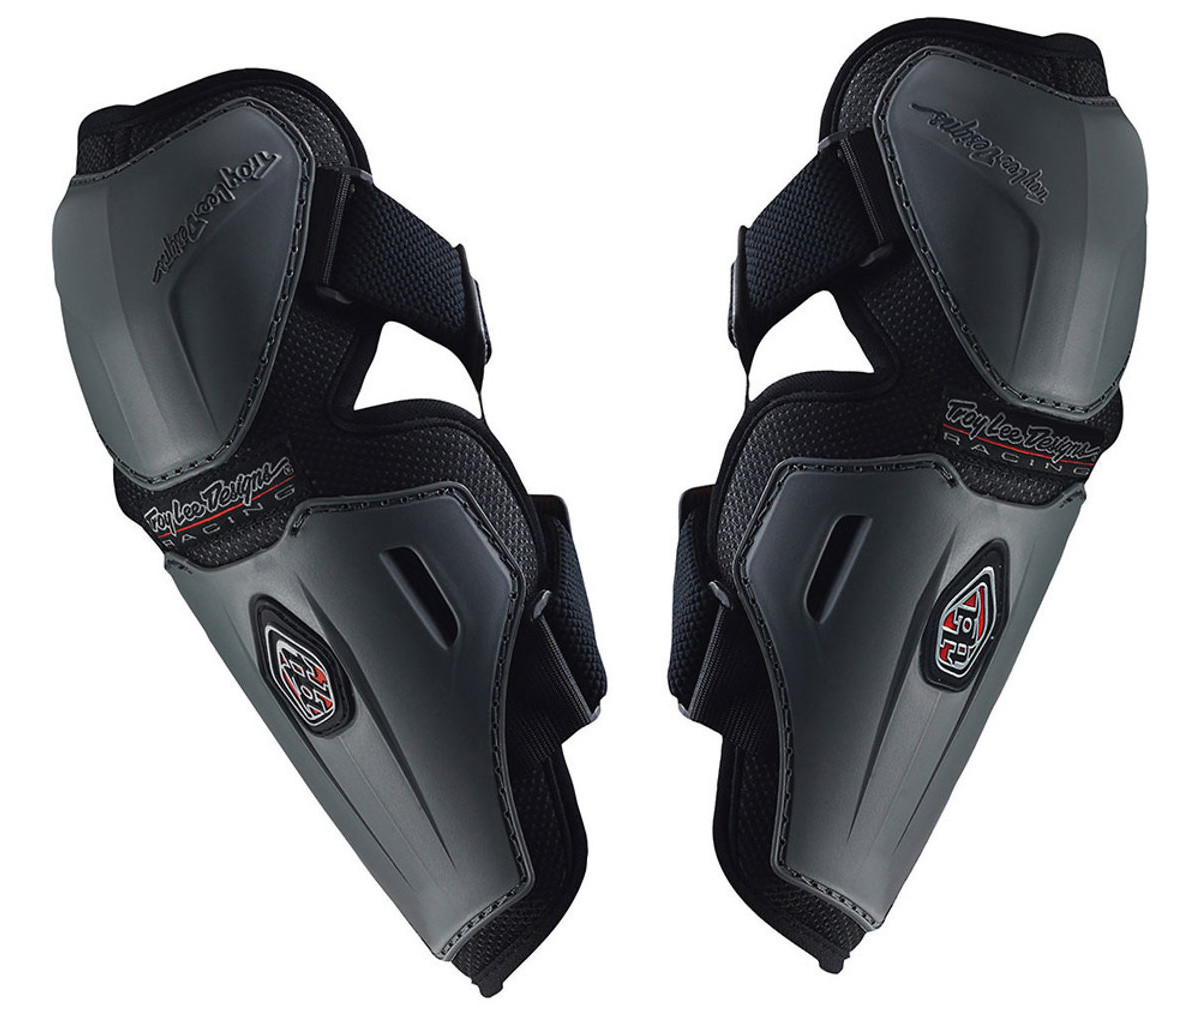 Troy Lee Designs Elbow/Forearm Guards  TLD Elbow/Forearm Guards